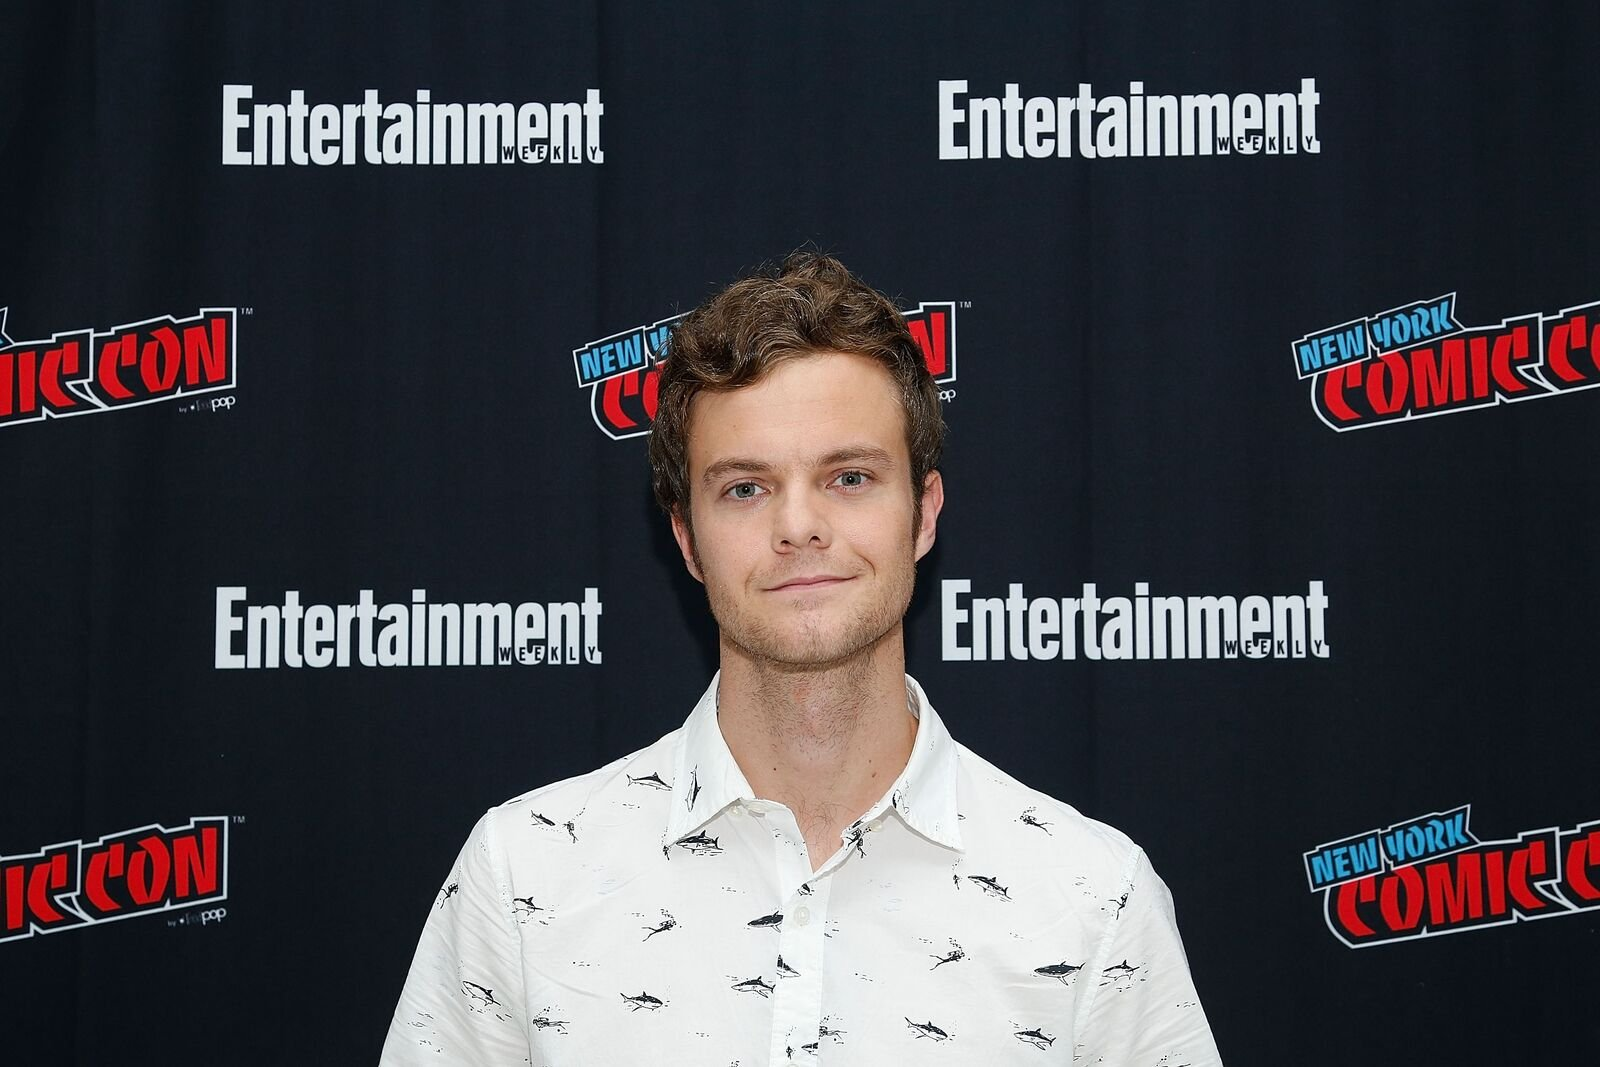 Actor Jack Quaid participates in Entertainment Weekly's Breaking Big panel at New York Comic Con on October 7, 2018 in New York City | Photo: Getty Images